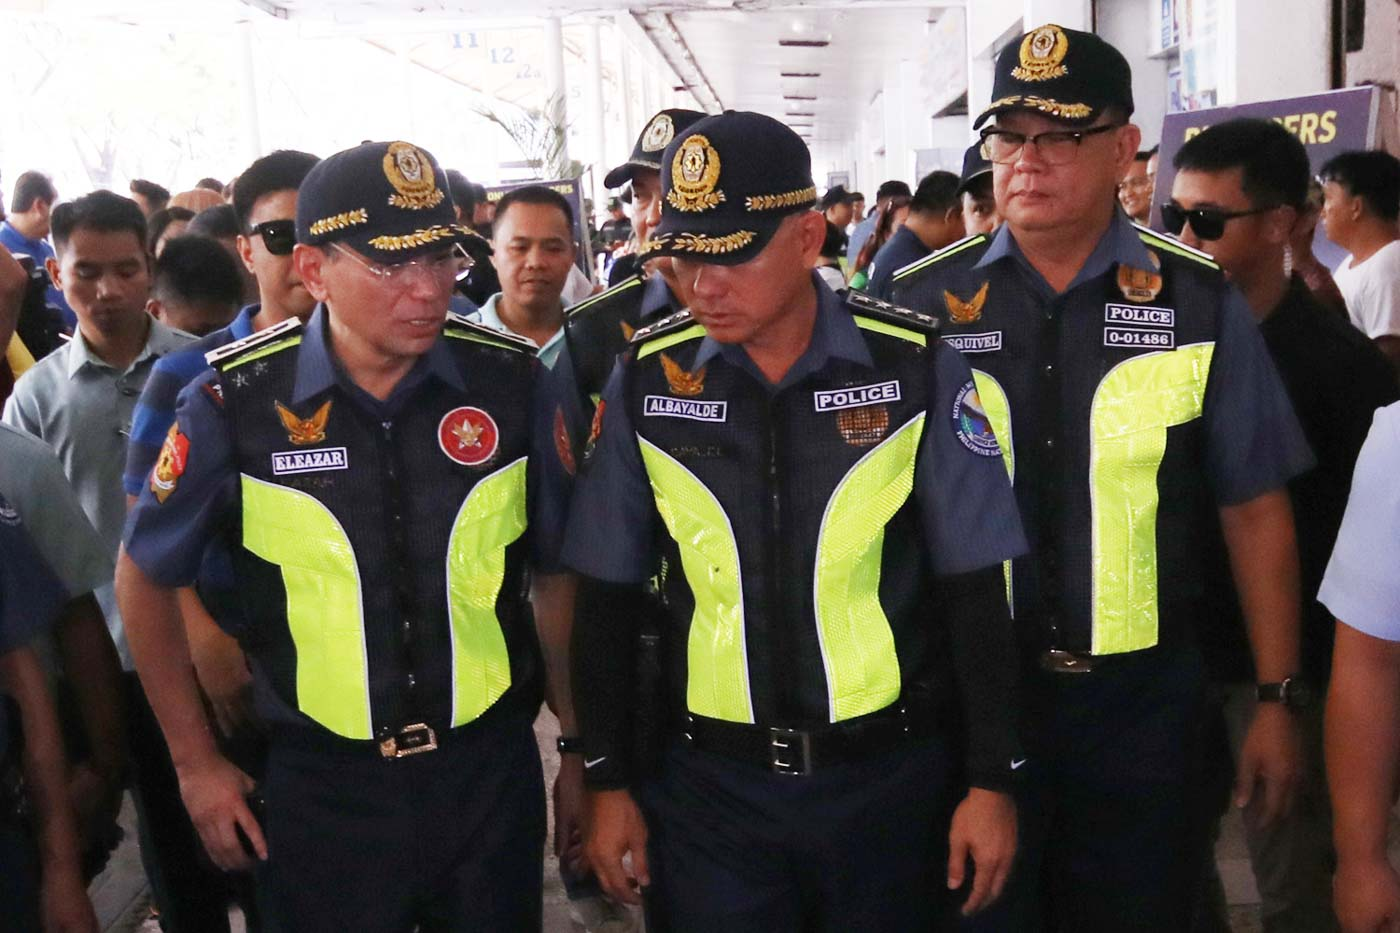 POLICE BOSSES. PNP chief Oscar Albayalde (center) is accompanied by NCRPO chief Guillermo Eleazar (left) and Quezon City police chief Joselito Esquivel (right) in his inspection. Photo by Darren Langit/Rappler